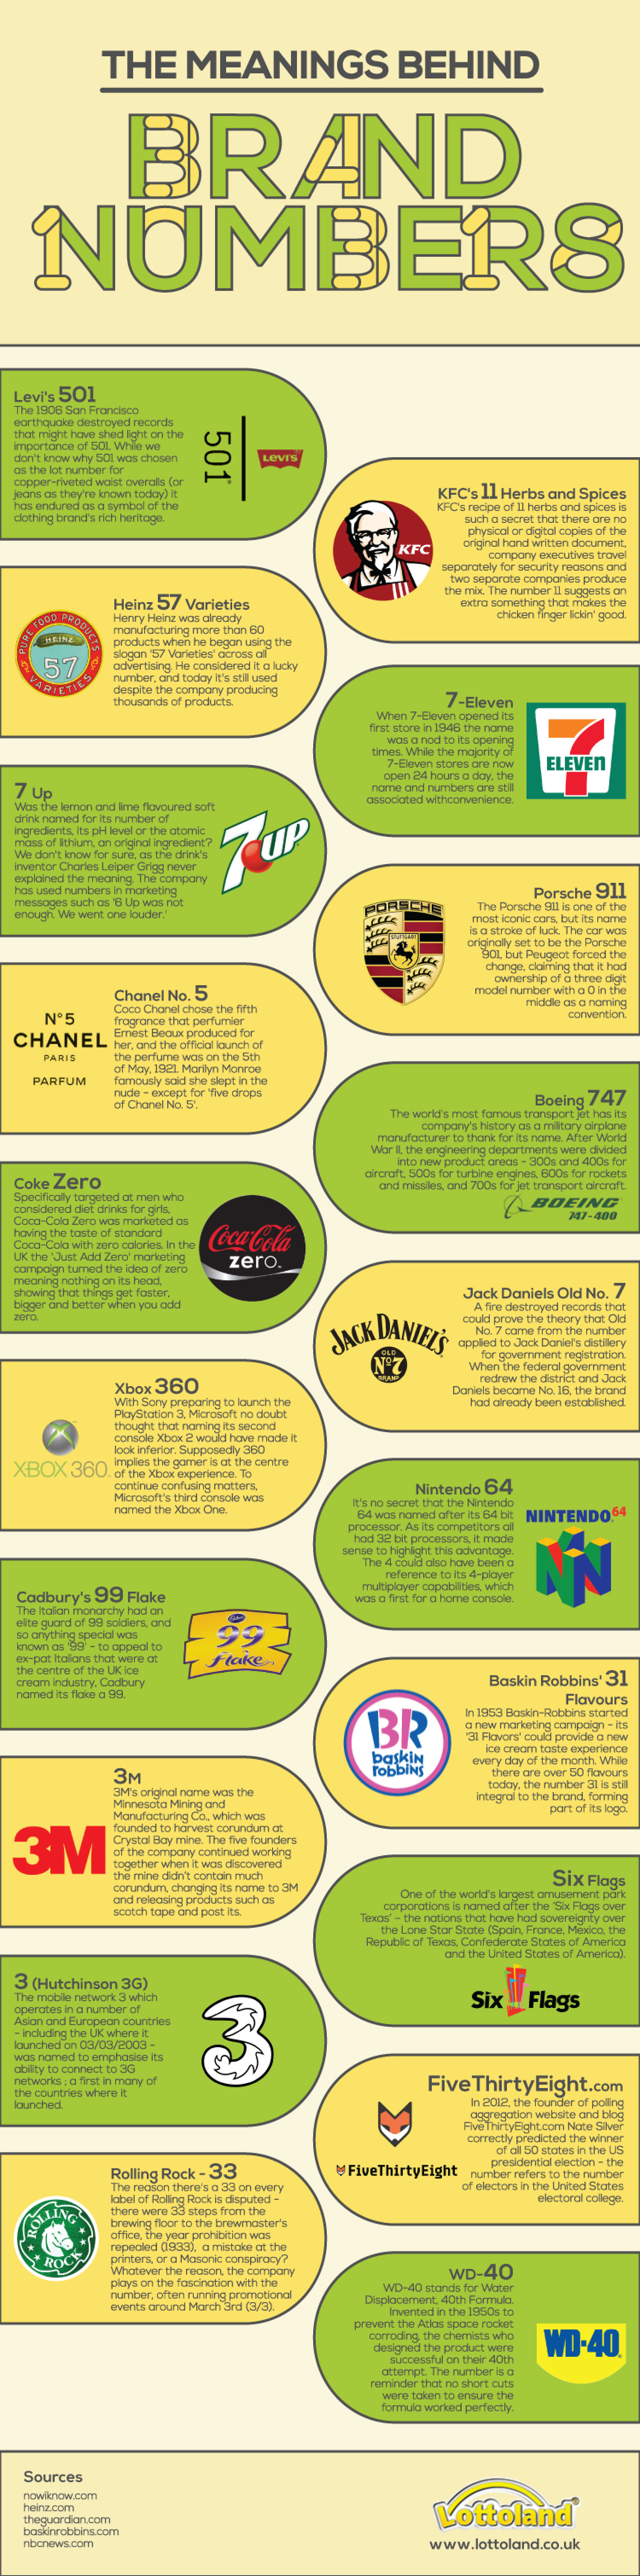 The Meaning Behind Brand Numbers Infographic